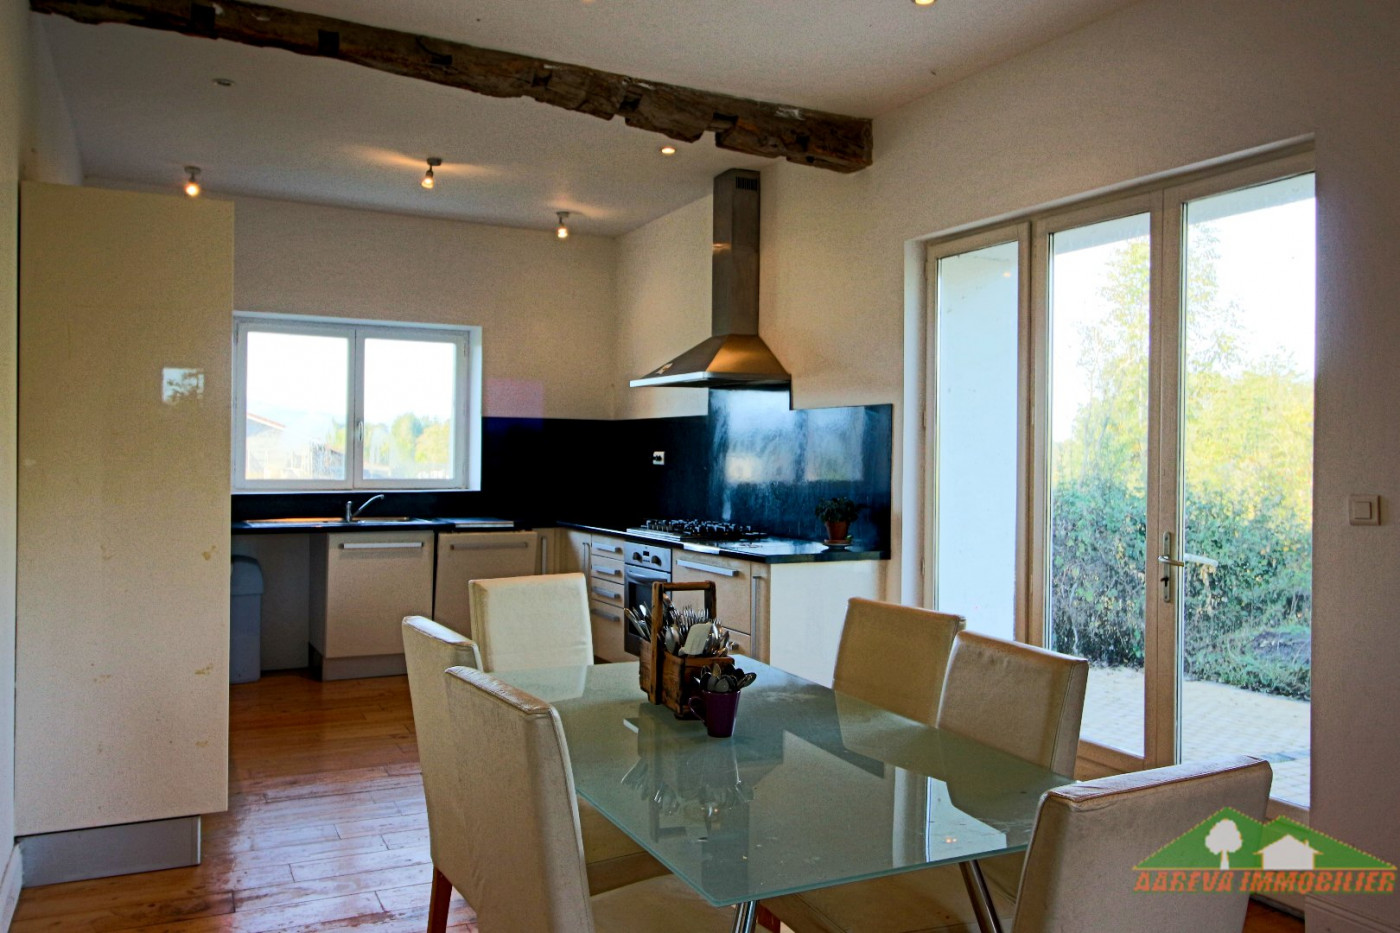 A vendre Franquevielle 31158628 Aareva immobilier